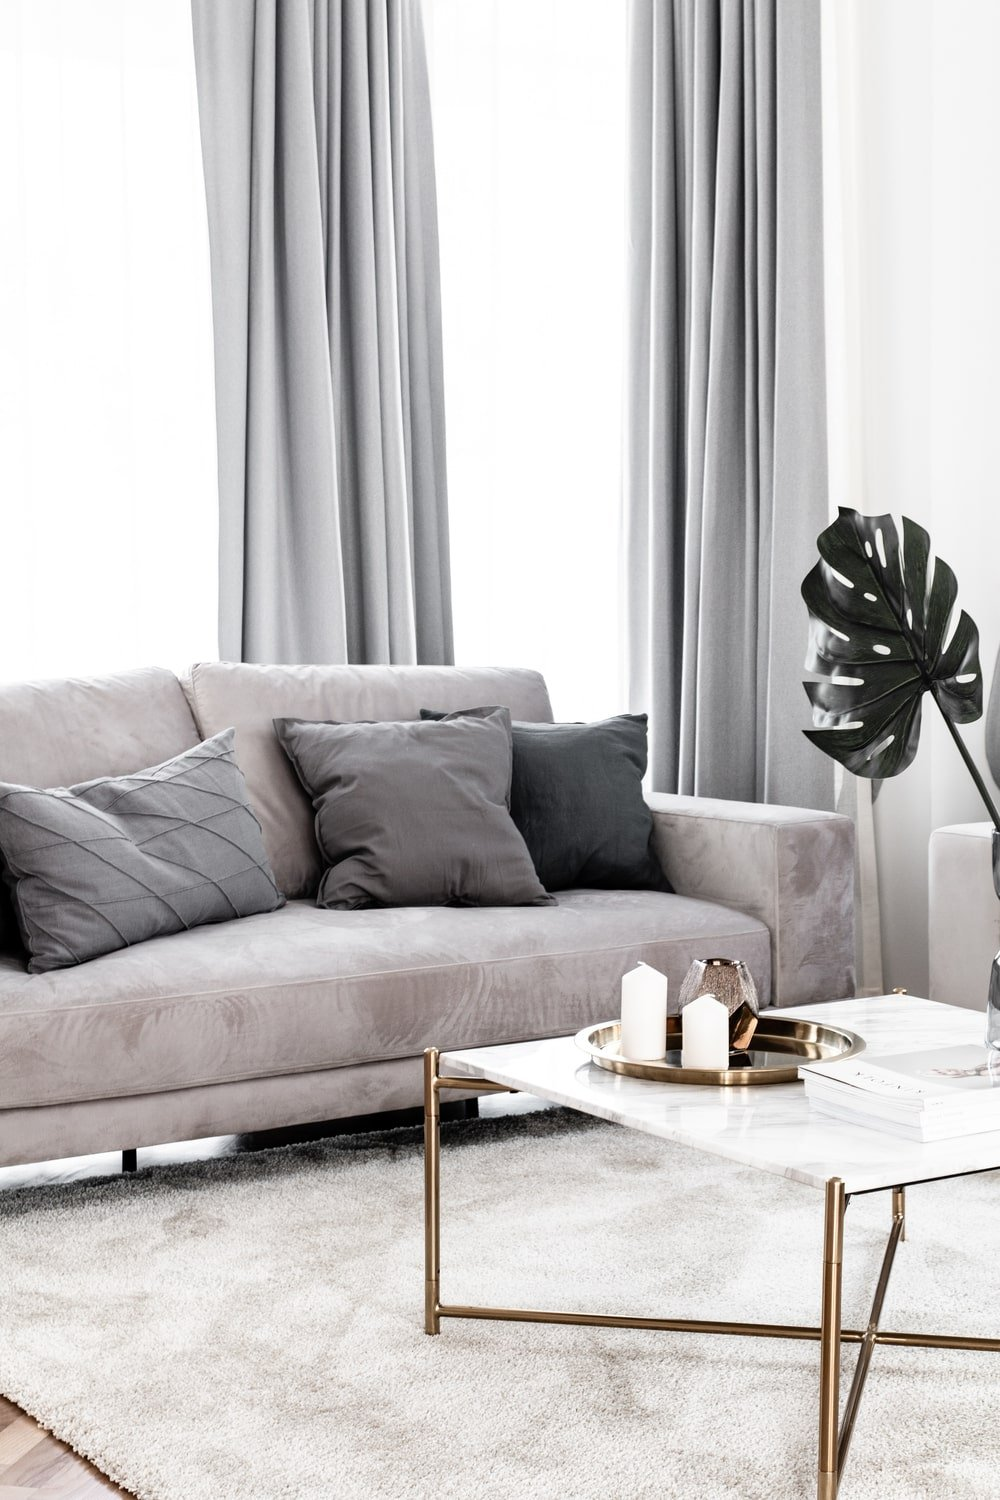 The golden metallic tone of the coffee table's frame makes it stand out against the light area rug.